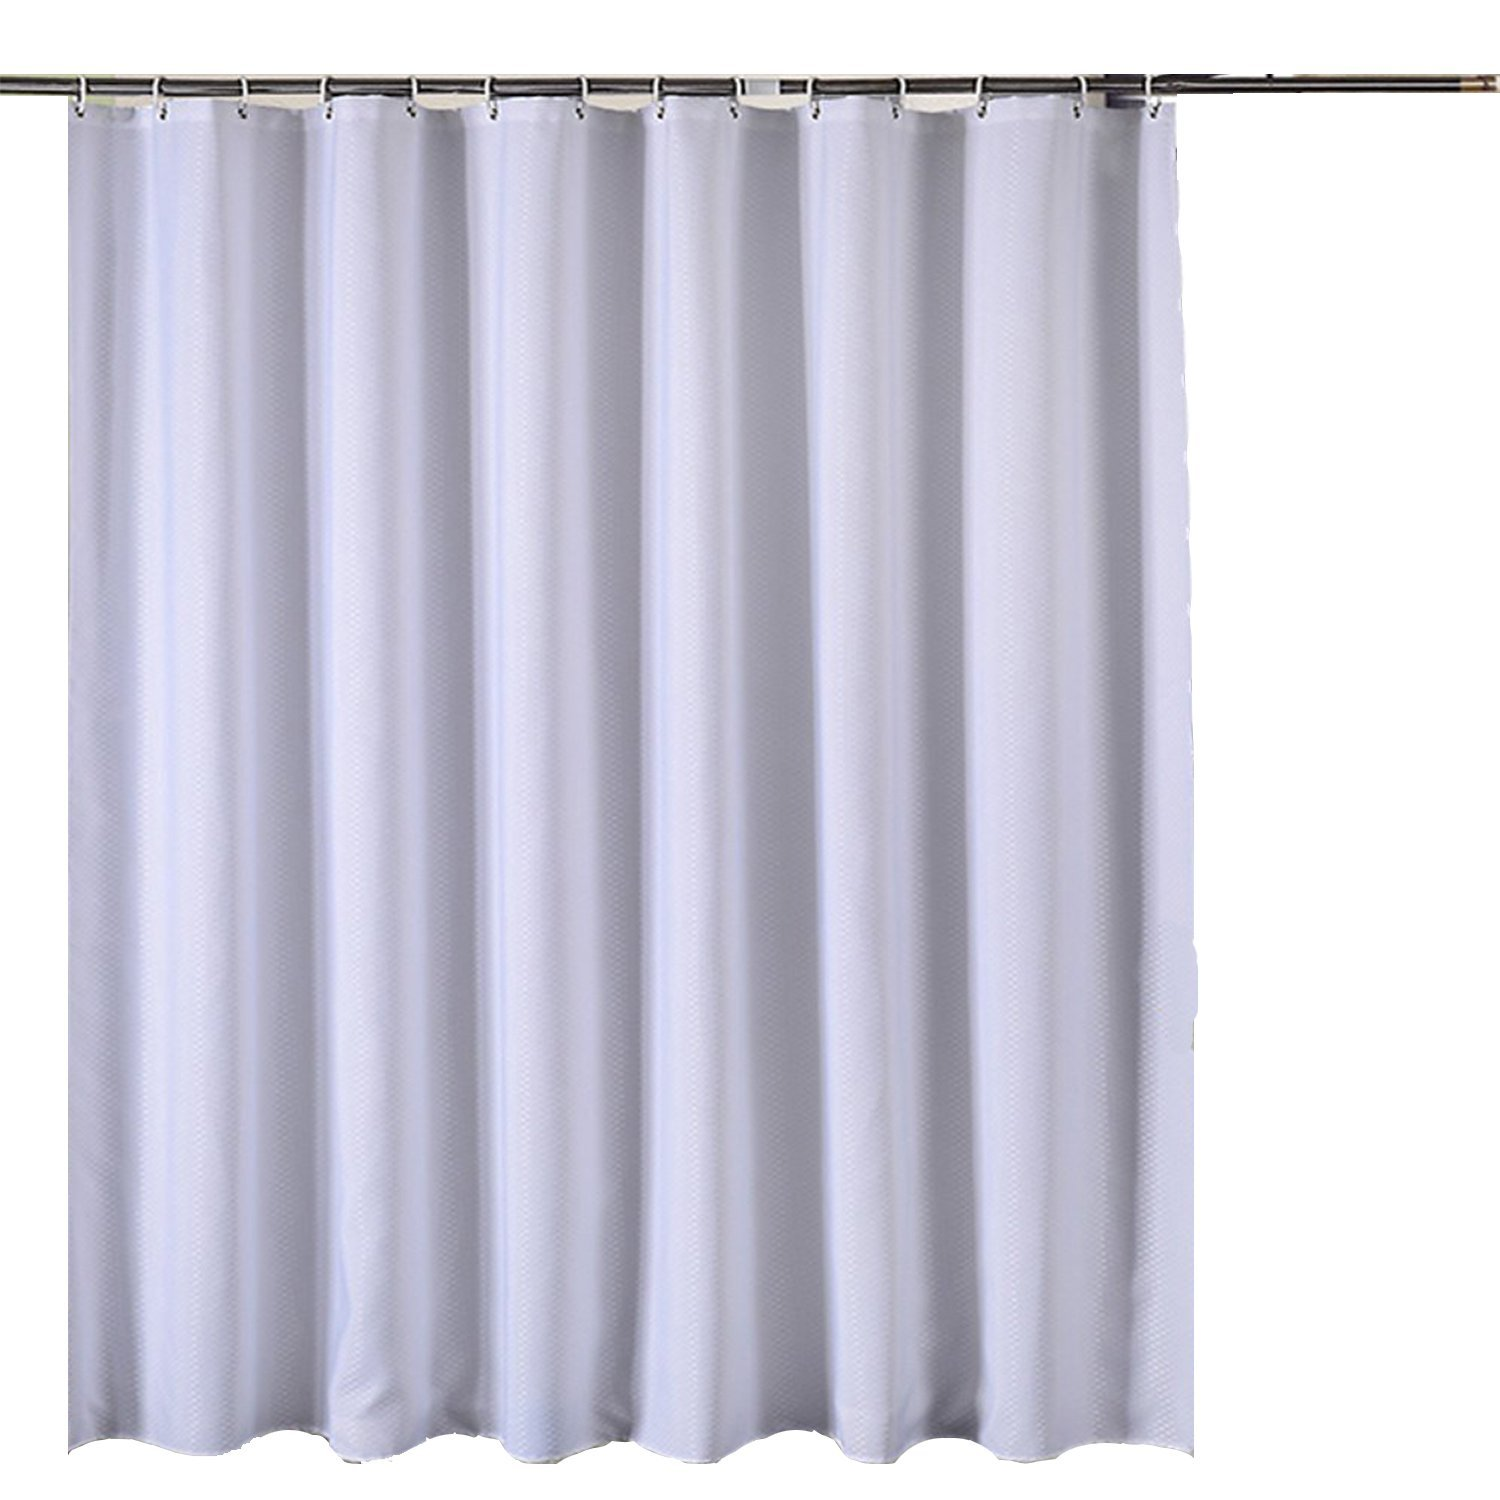 shower waffle curtain com white ip and homes walmart better stripe curtains gardens fabric